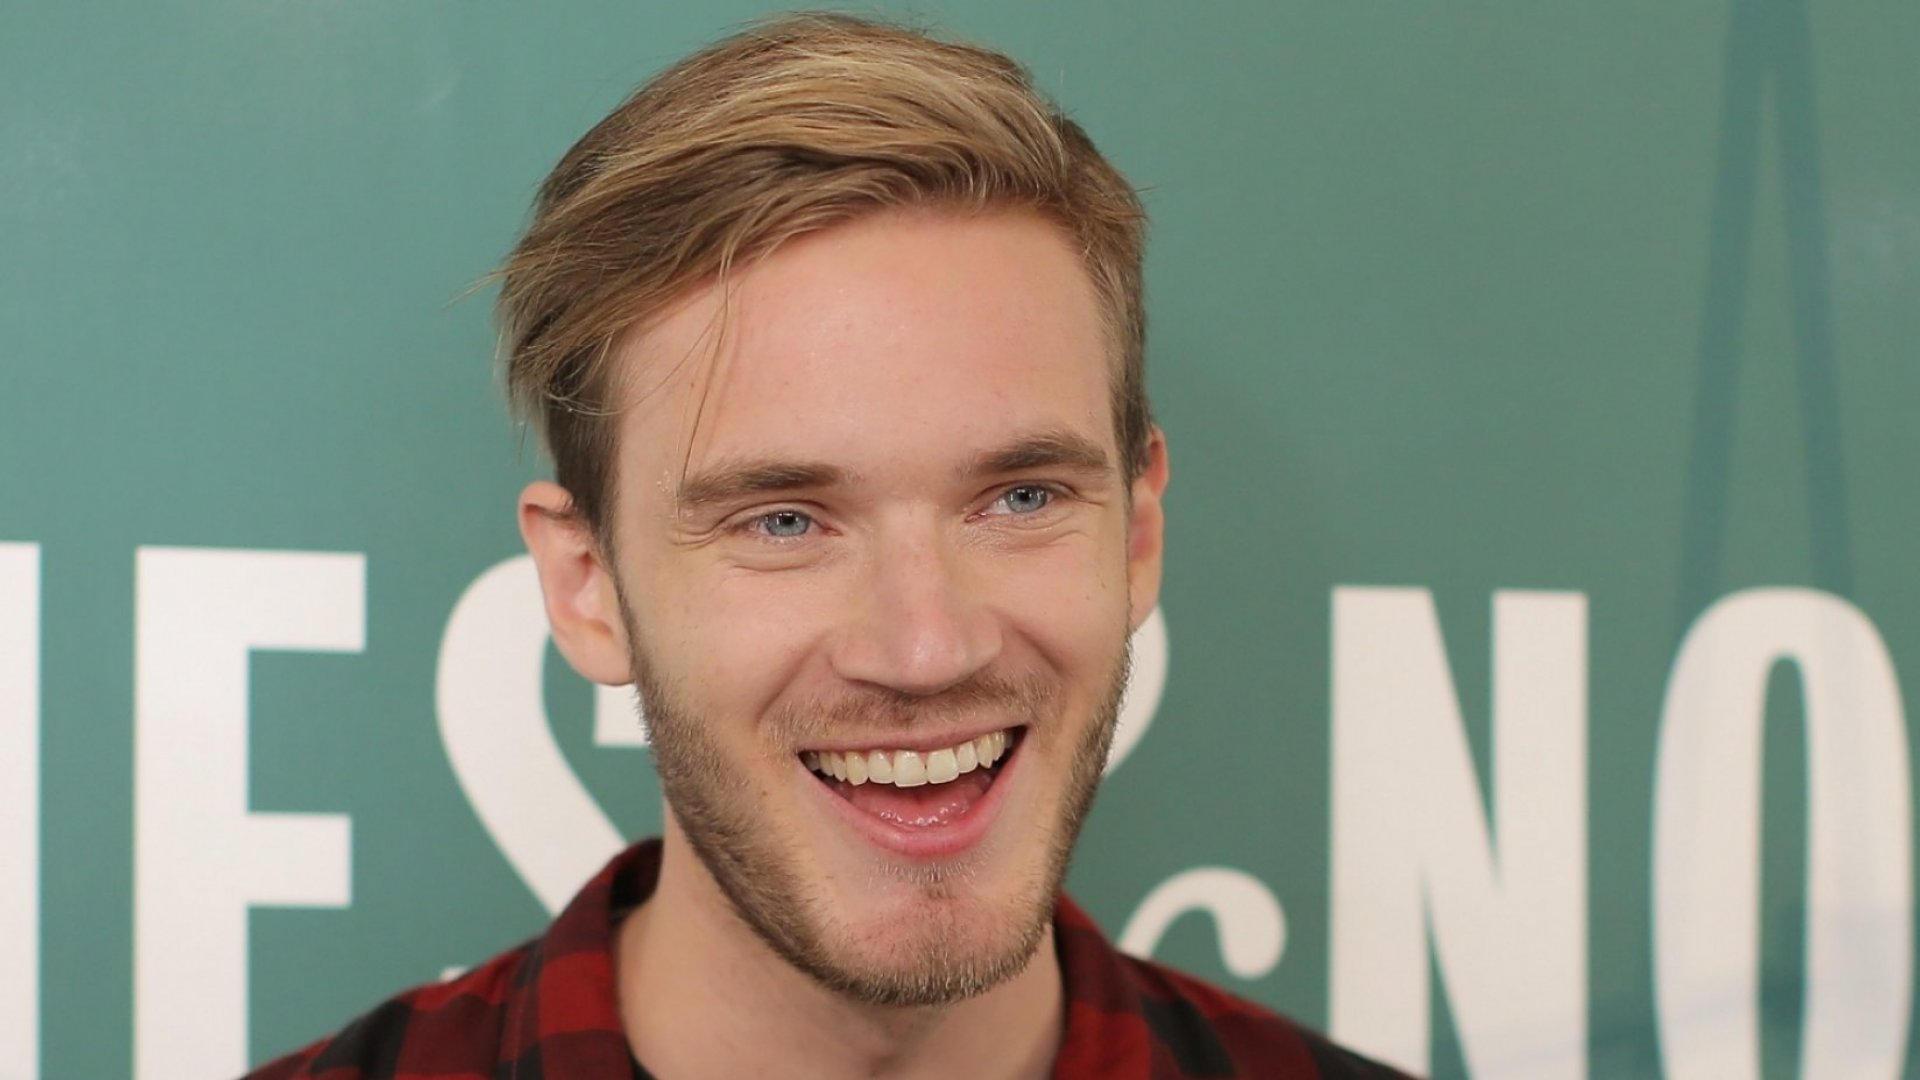 PewDiePie Finally Loses to T-Series  for Top YouTube Channel. Here's Why That's a Good Thing